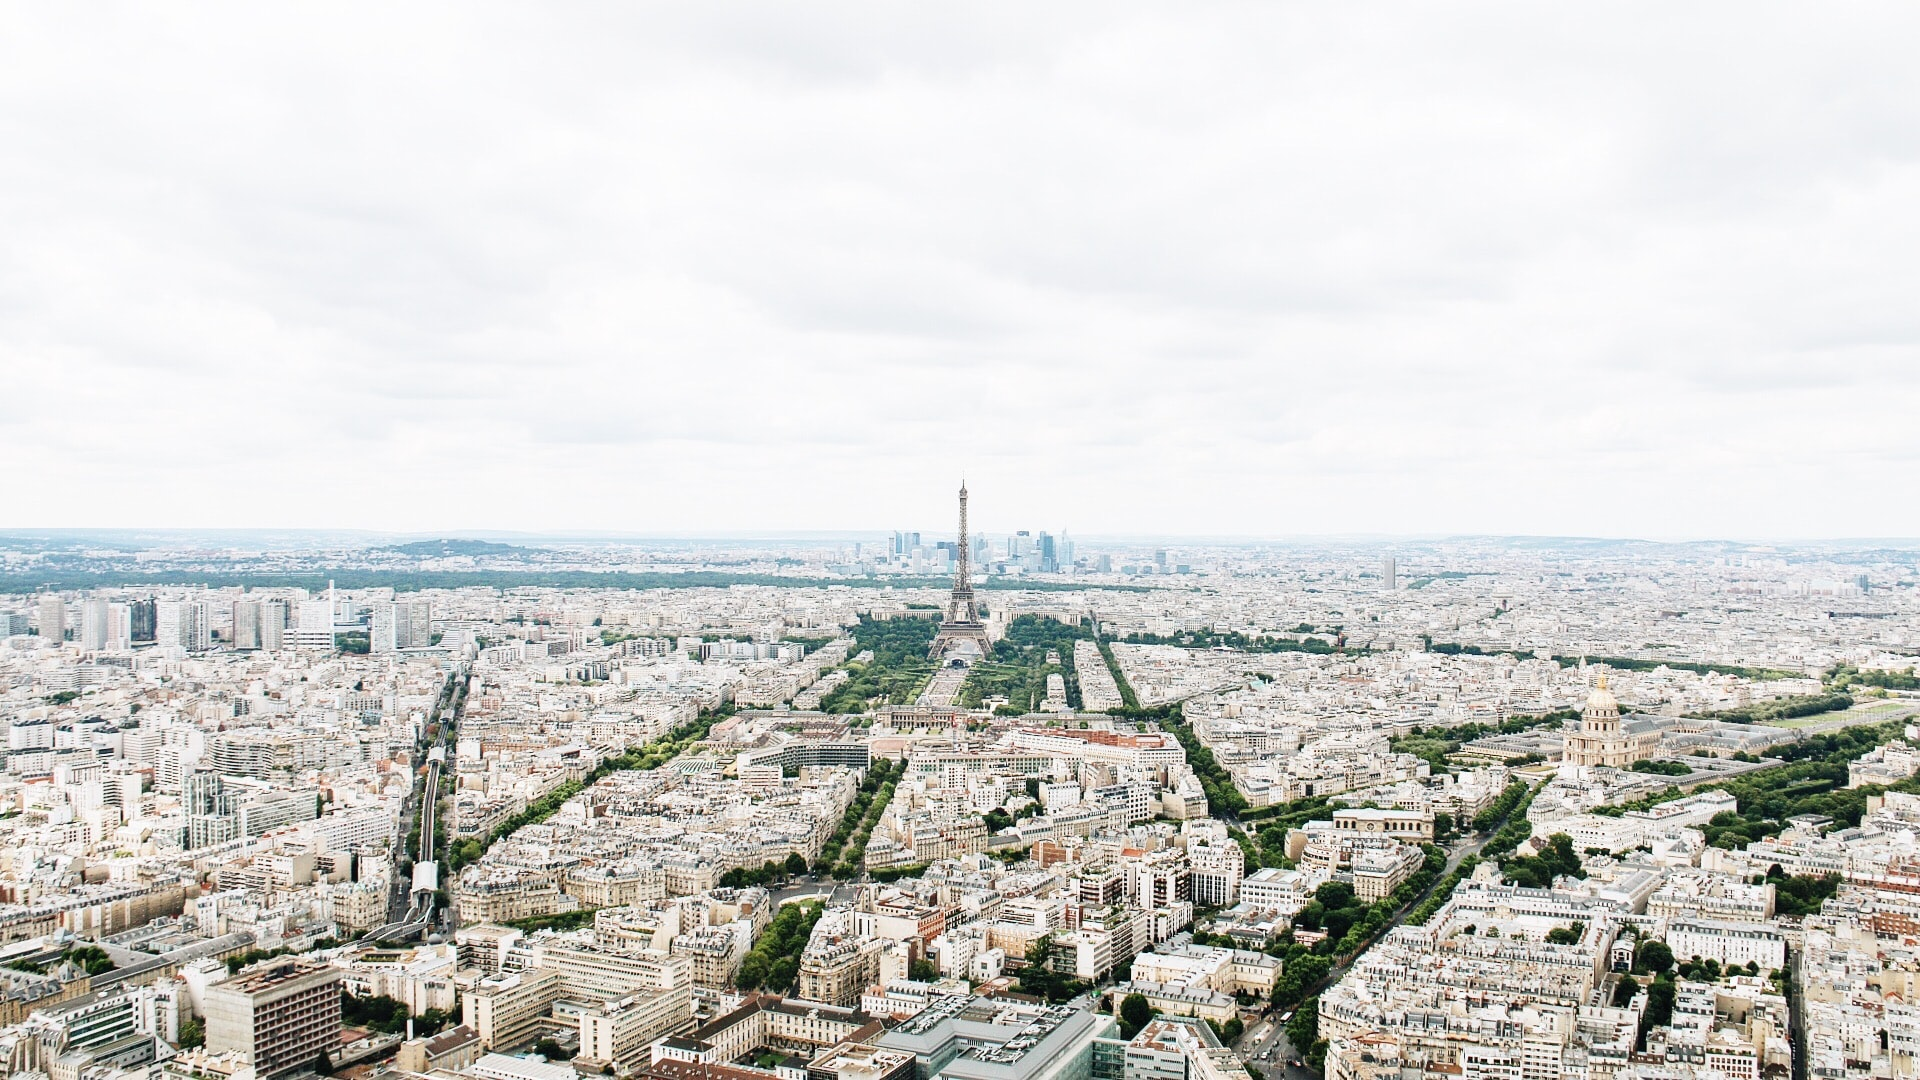 Urban cityscape of Paris with the historic Eiffel Tower at the center.